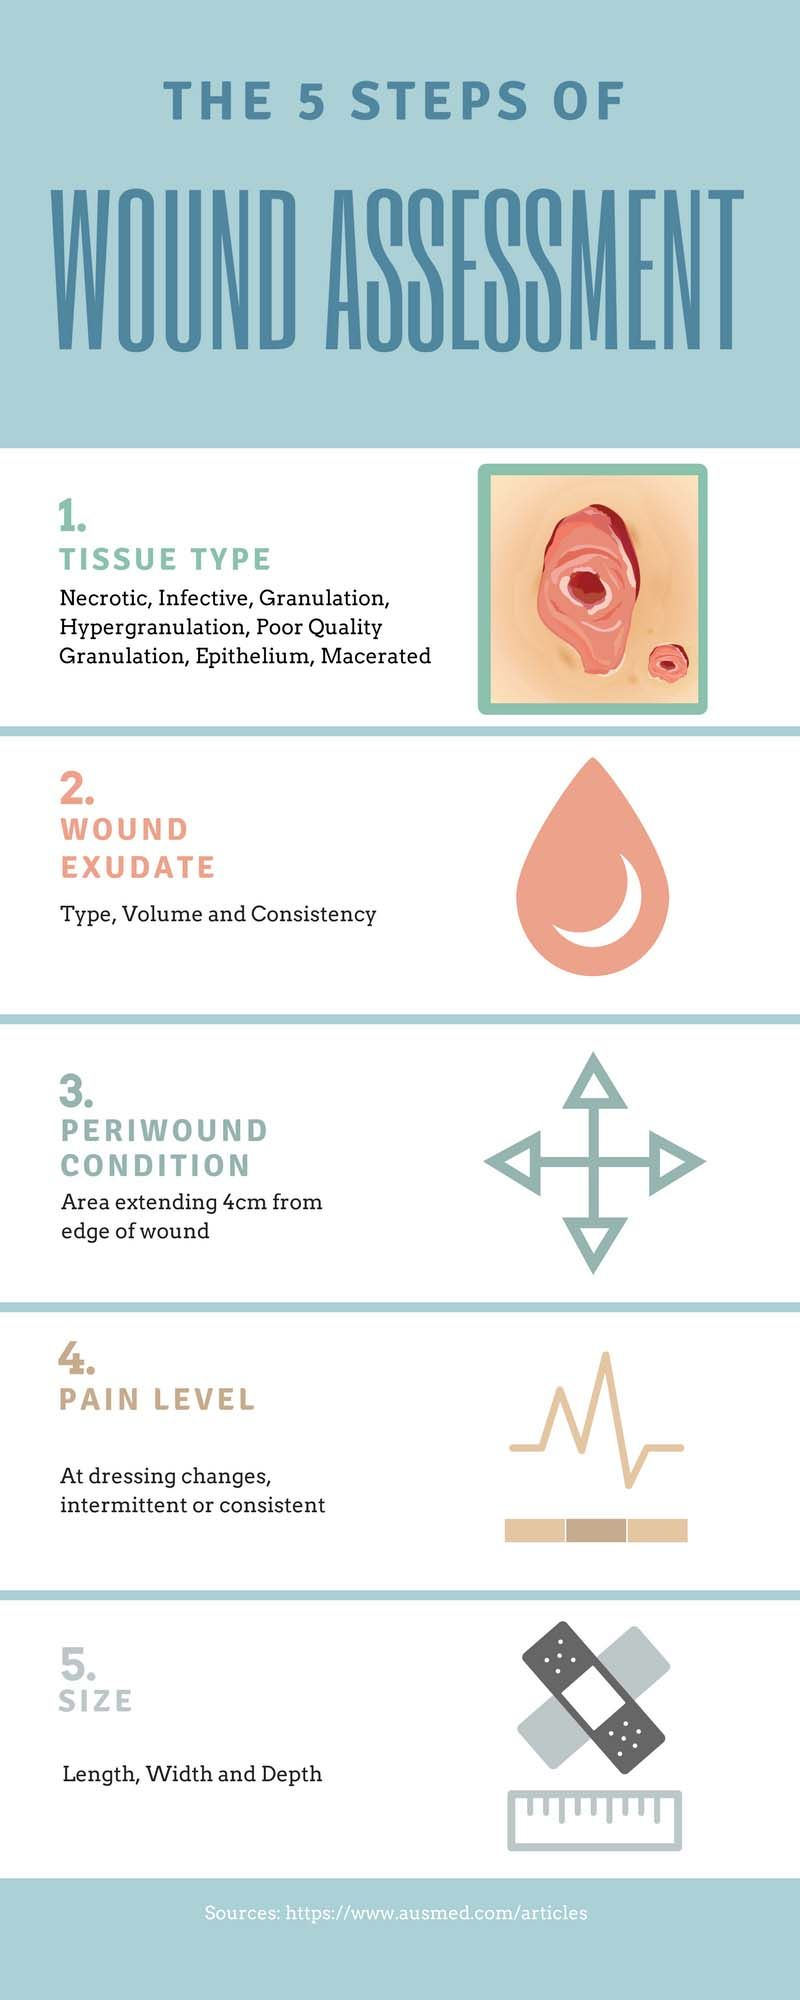 Ausmeds wound care and wound healing guide for nurses infographic ausmeds wound care and wound healing guide for nurses infographic wound assessment xflitez Gallery